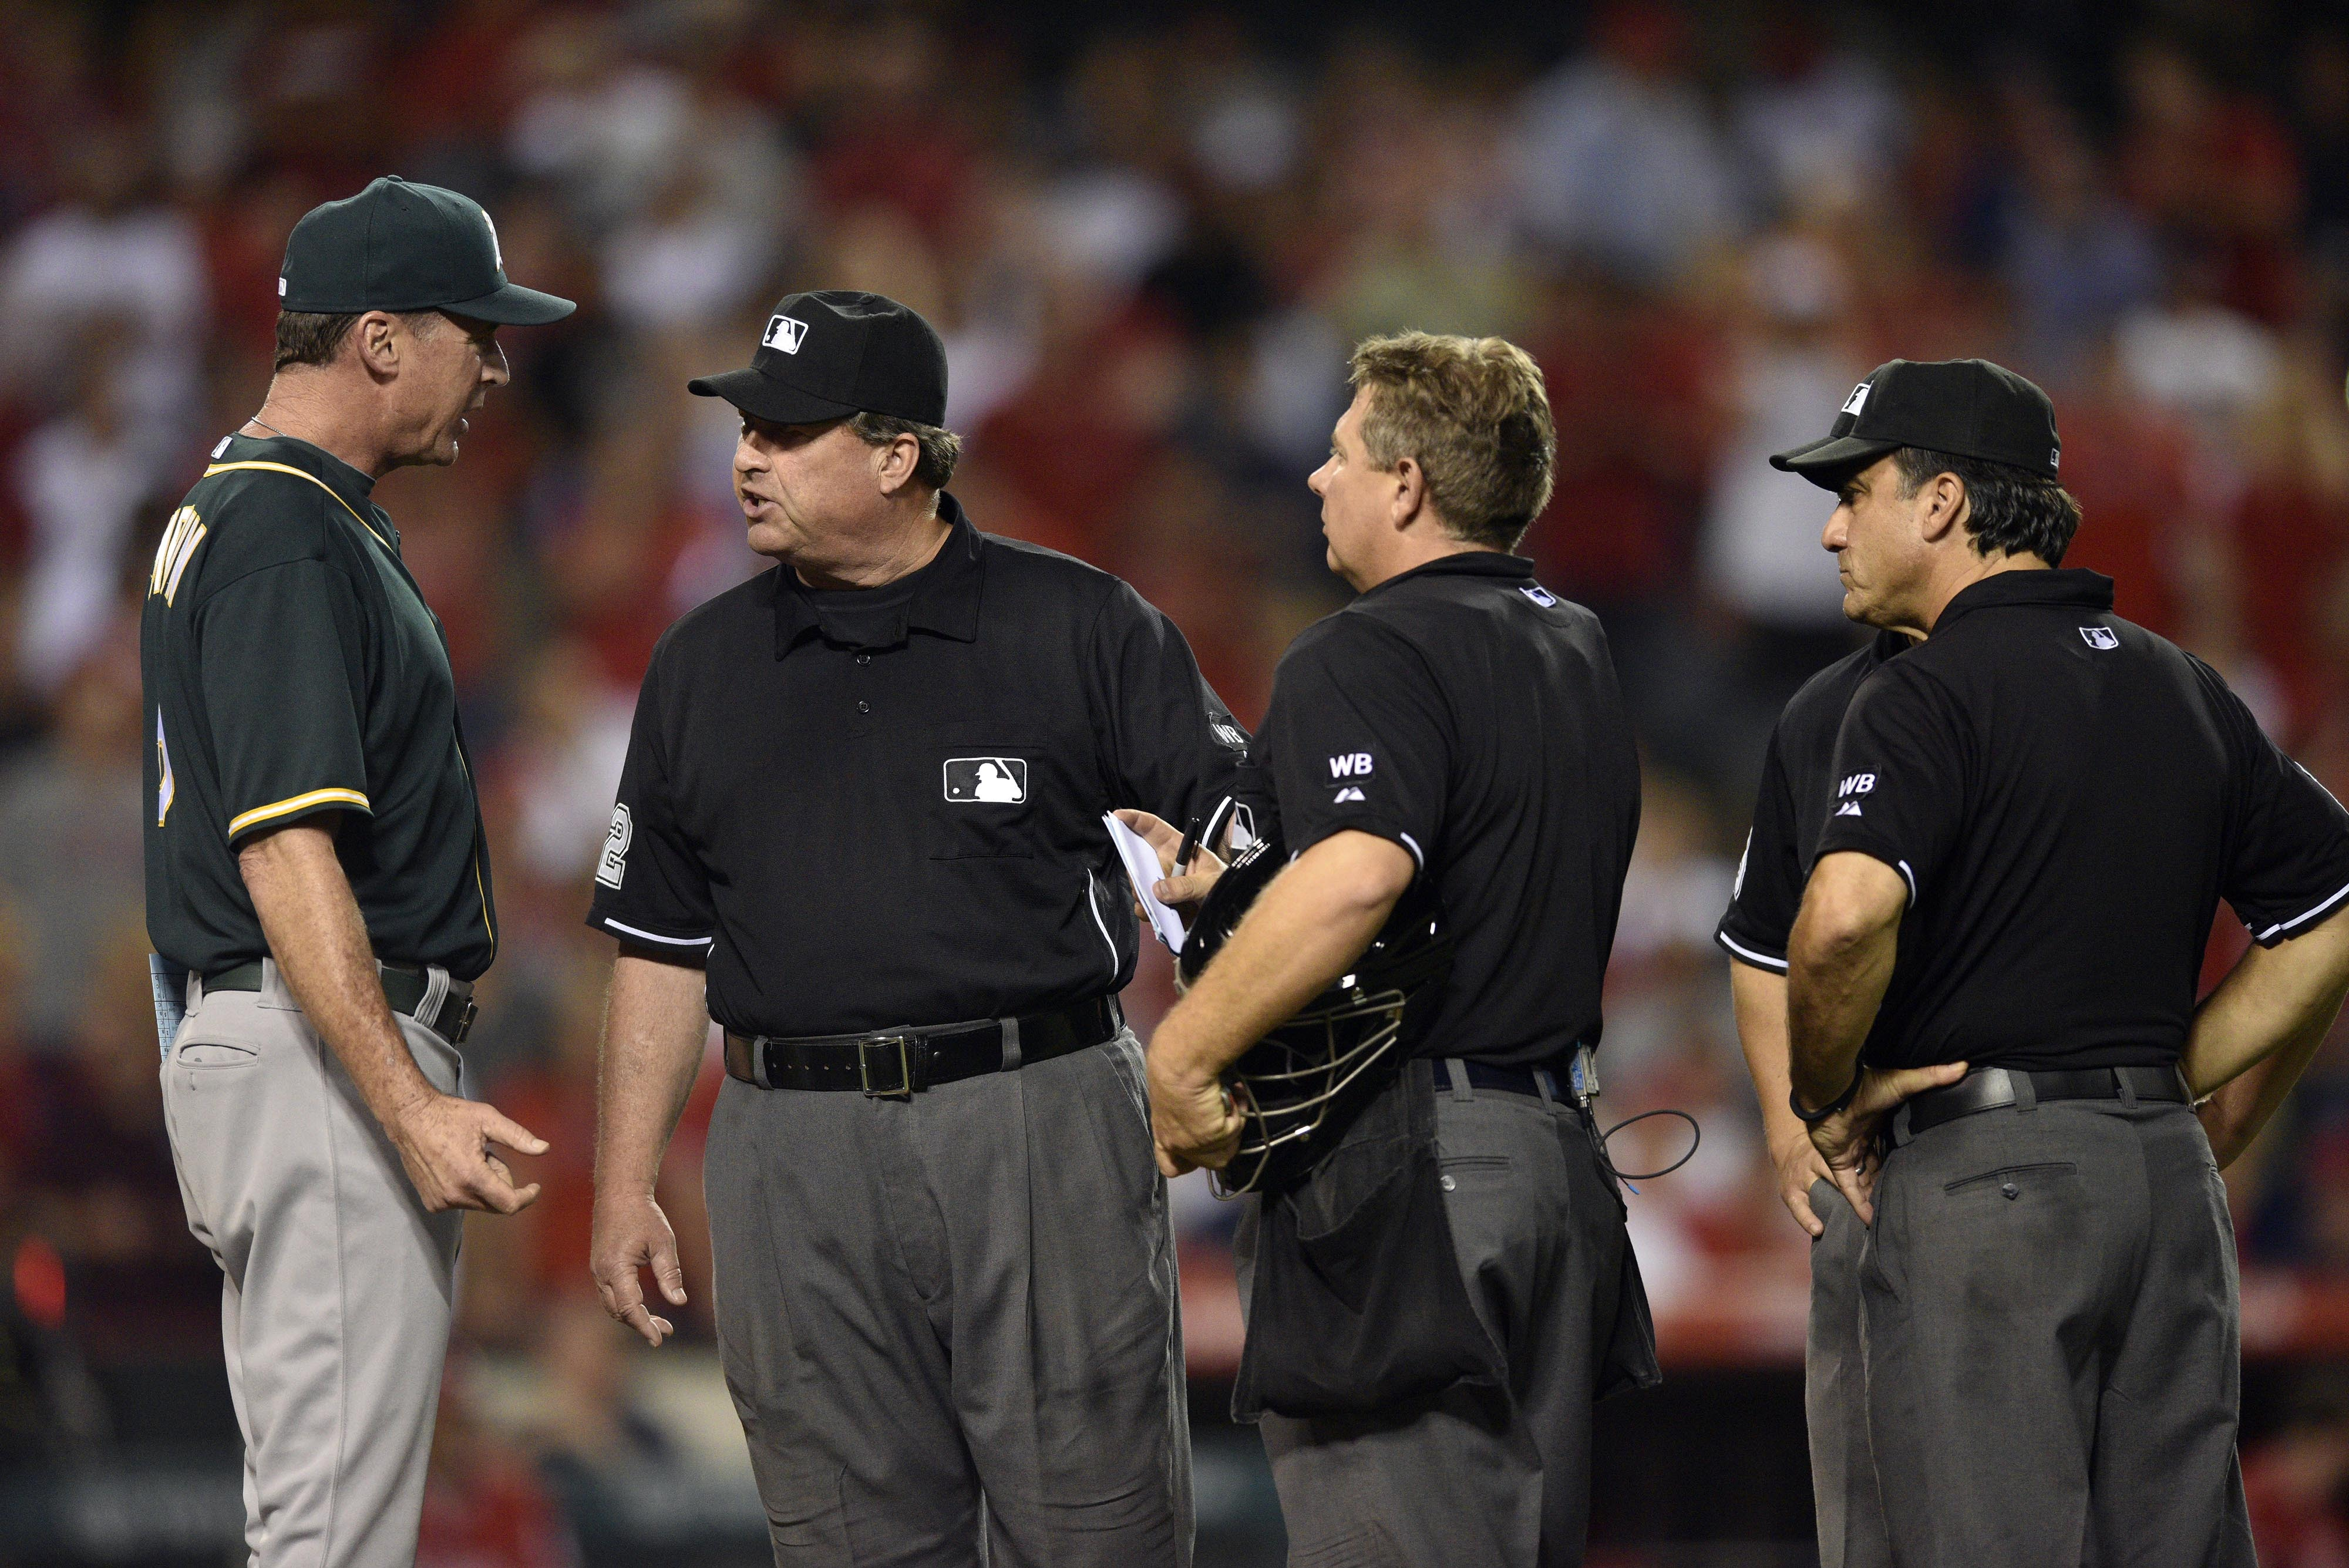 Angels beat Athletics, Oakland protests game after obstruction call